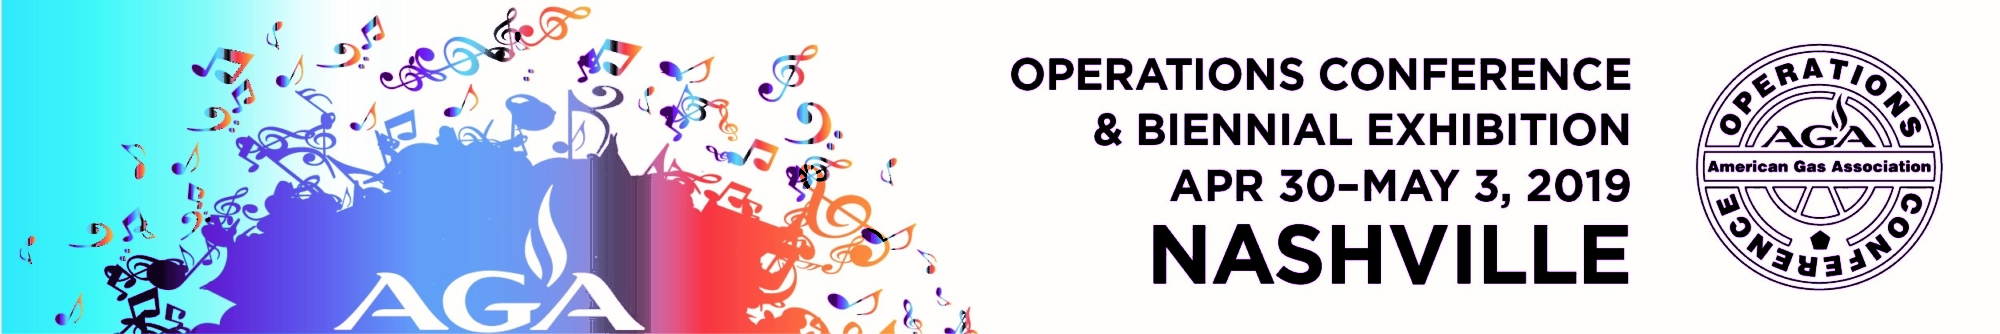 Operations Conference & Biennial Exhibition